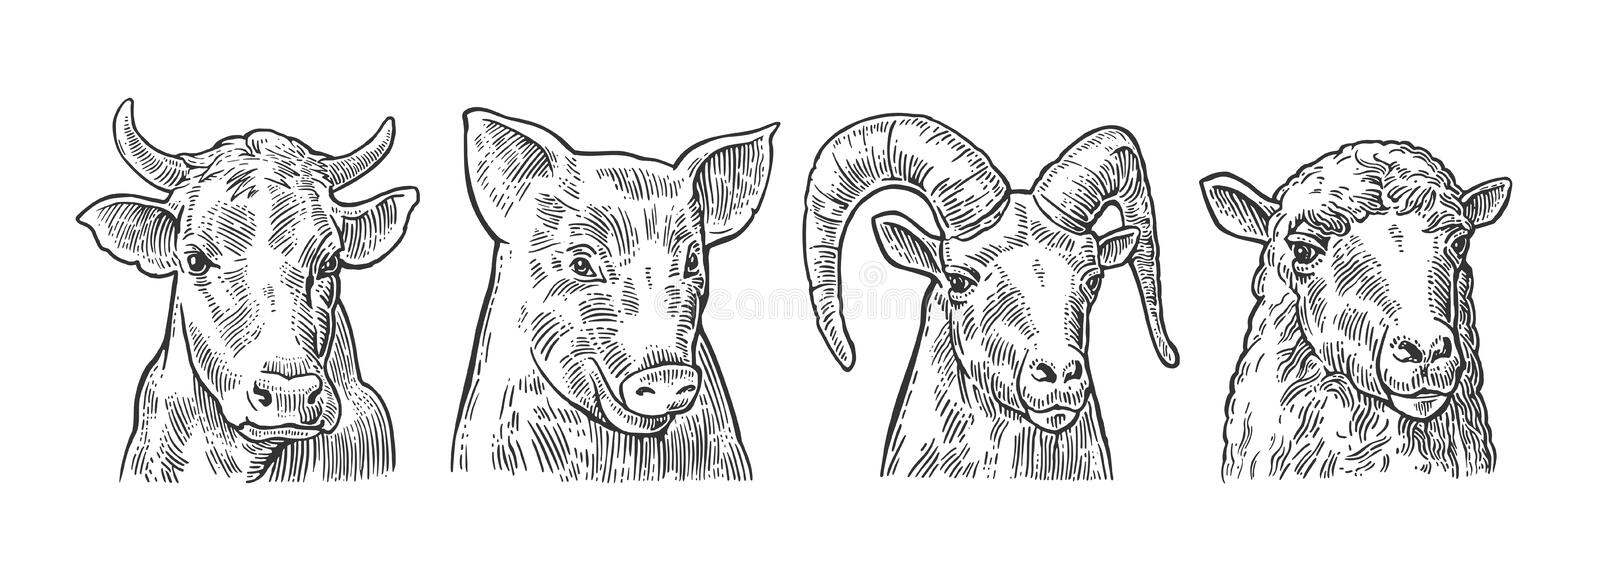 Farm animals icon set. Pig, cow, sheep and goat heads vector illustration